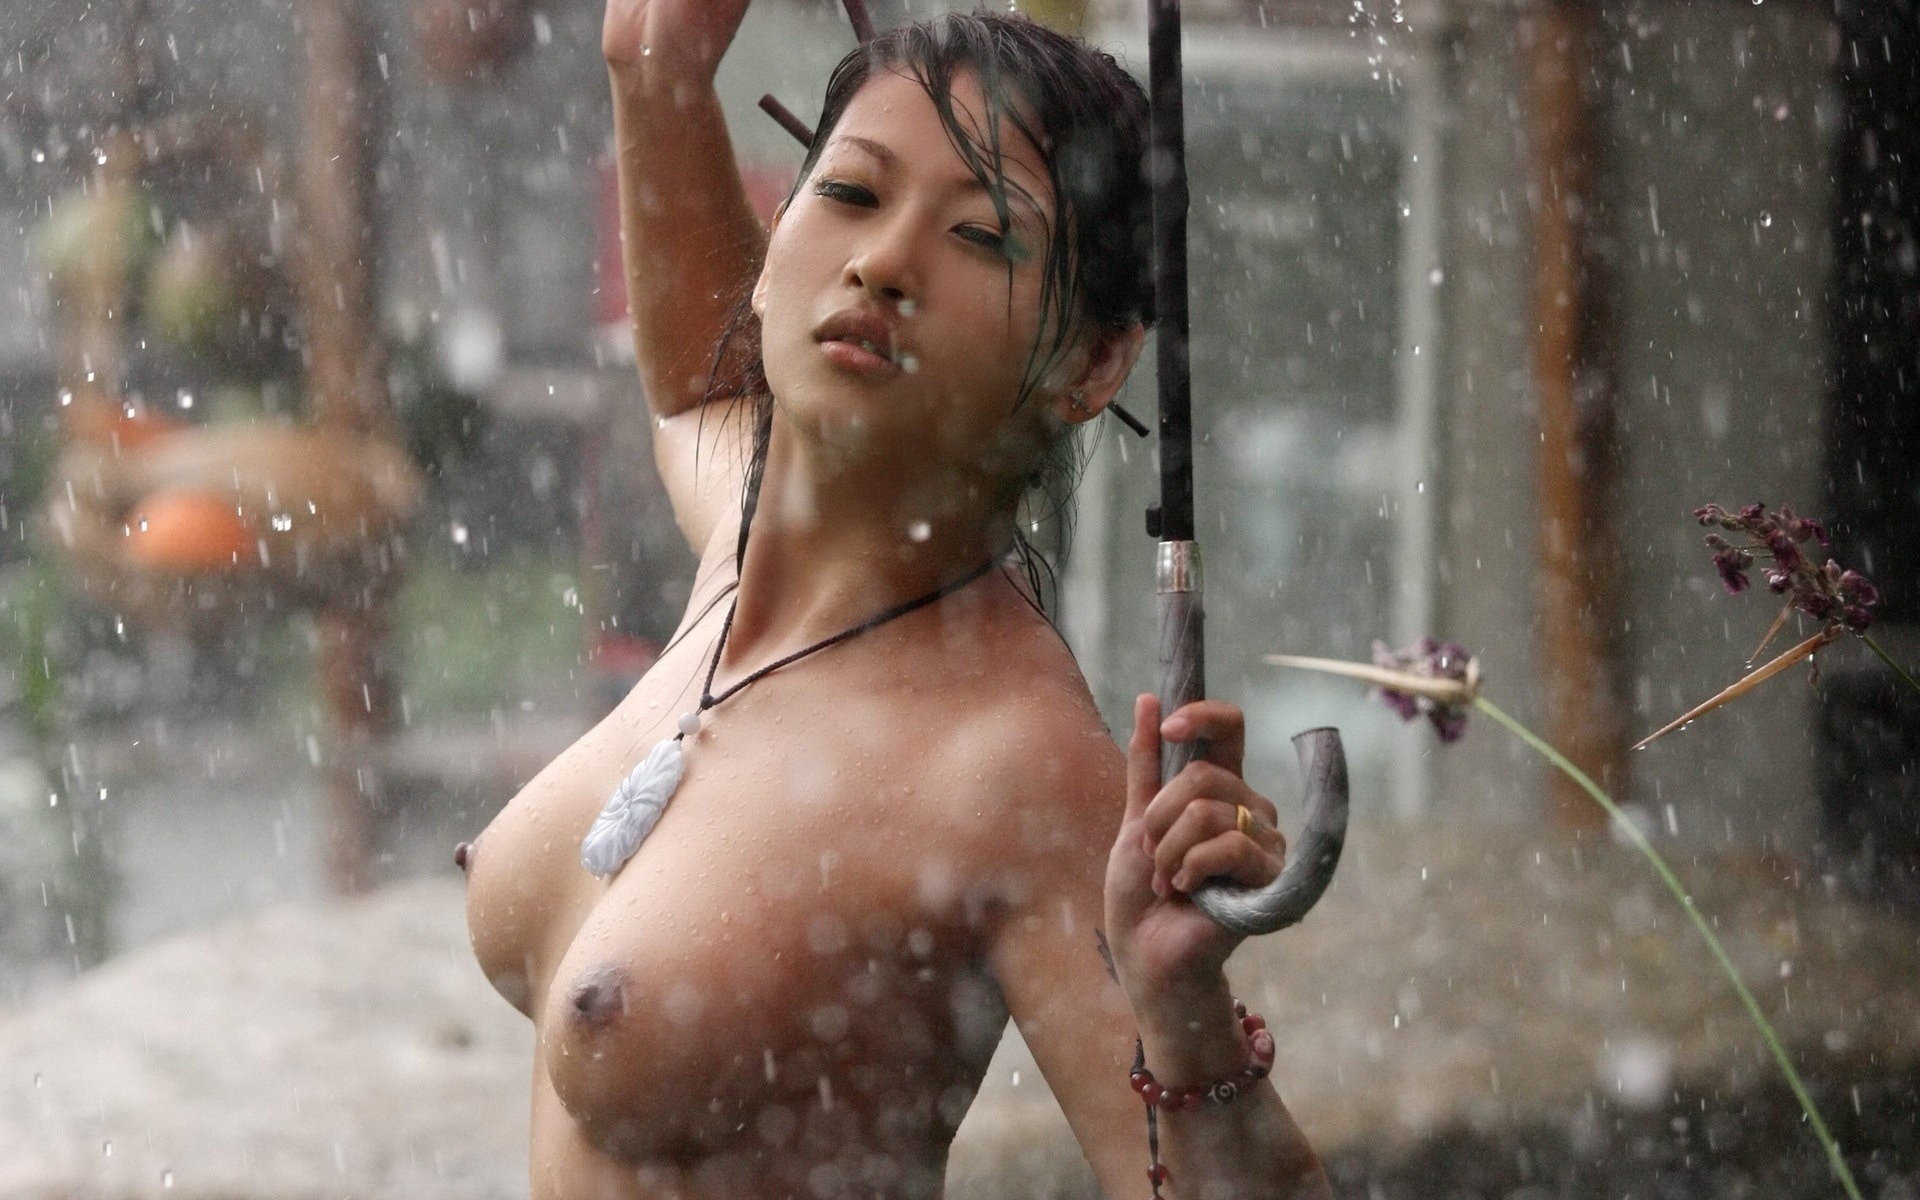 nude-rainy-video-of-monalisa